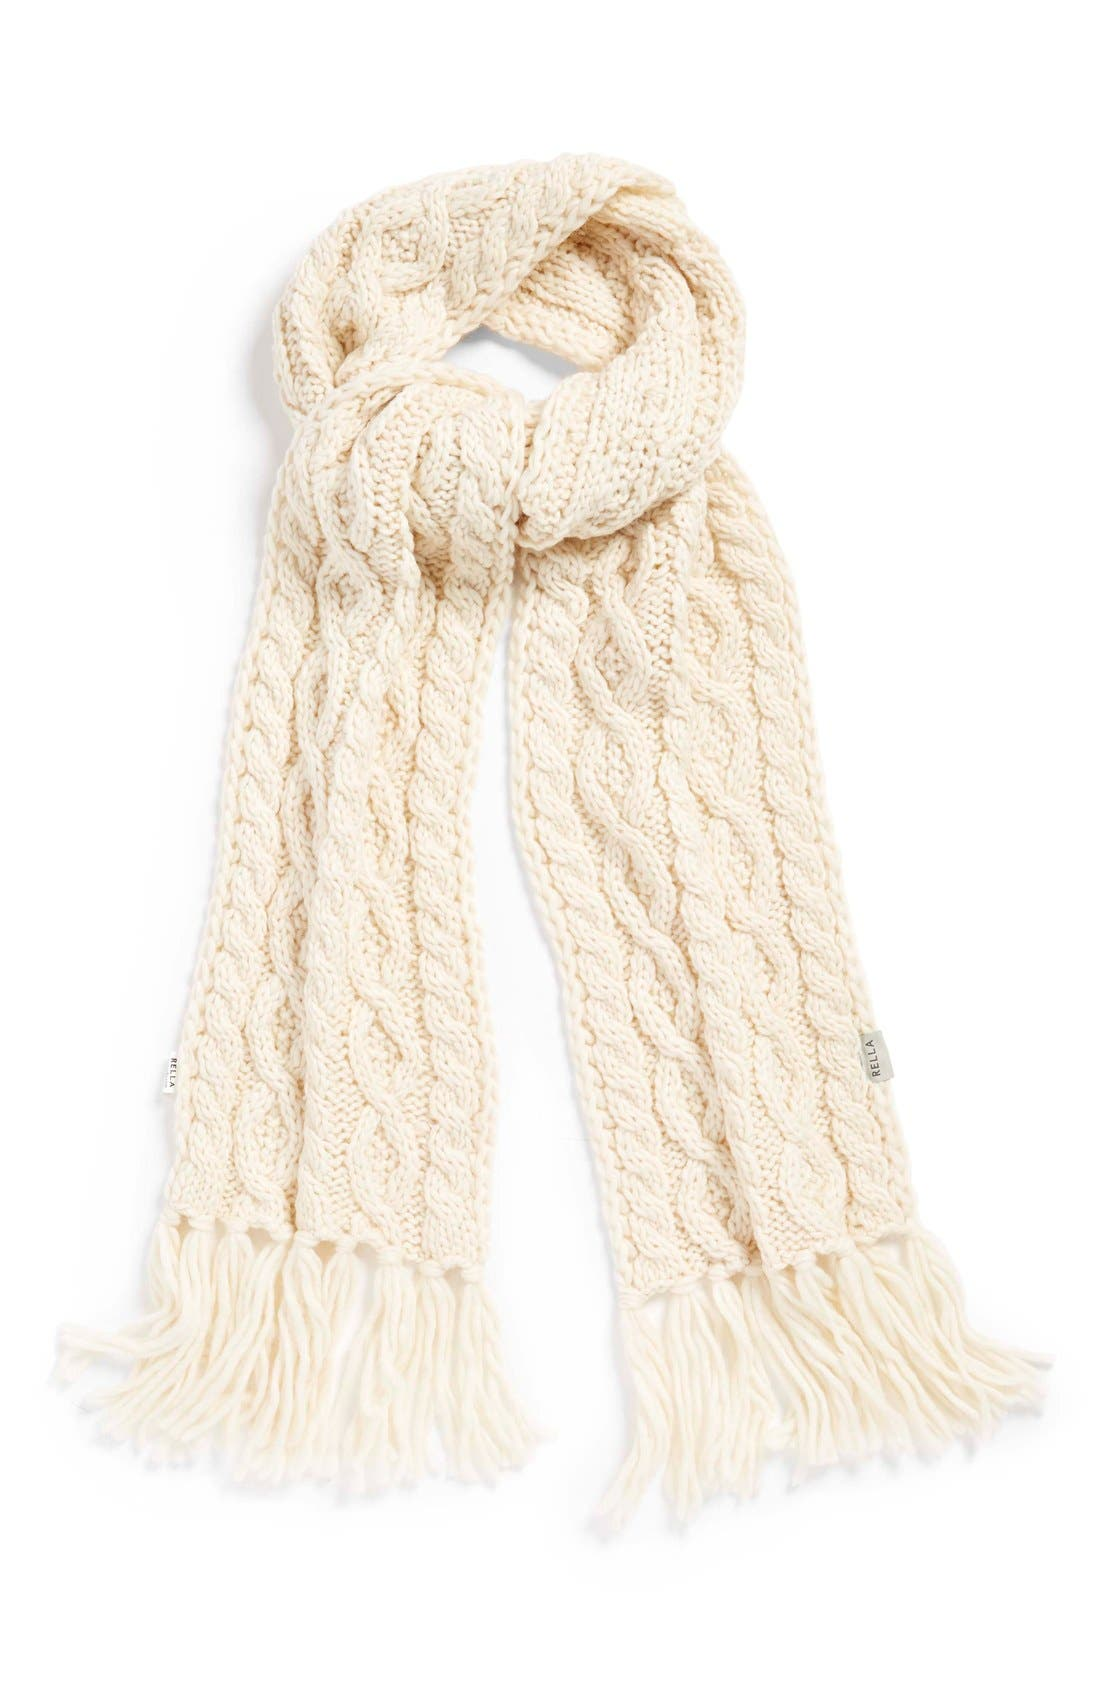 Alternate Image 1 Selected - Rella 'Betto' Cable Knit Merino Wool Blend Scarf